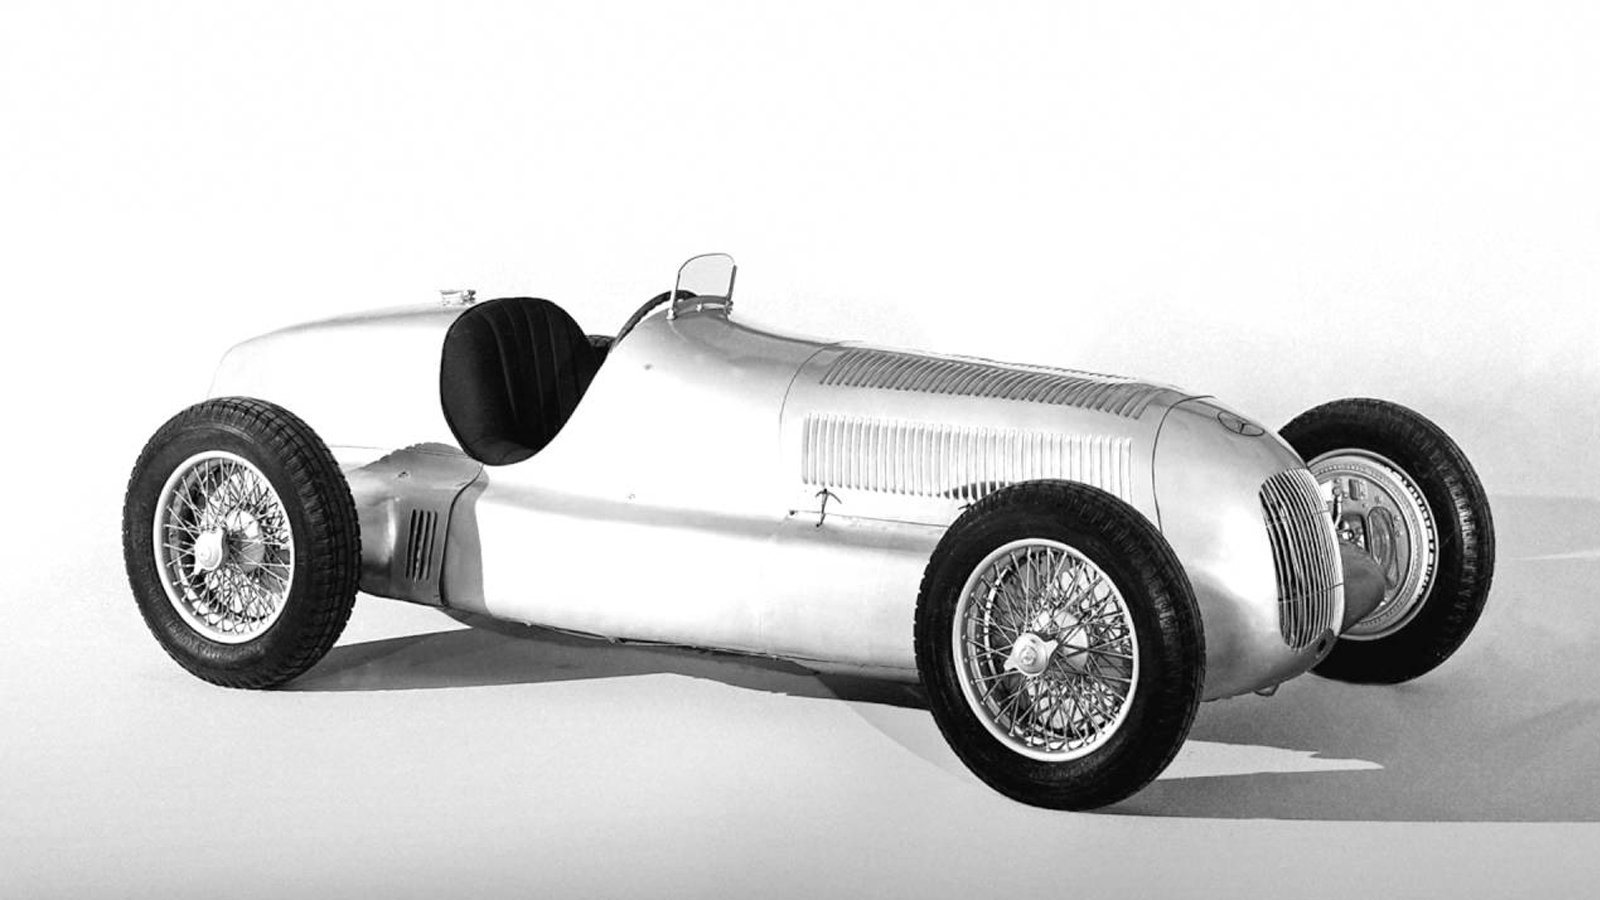 Most Significant Mercedes-Powered Racecars of All Time